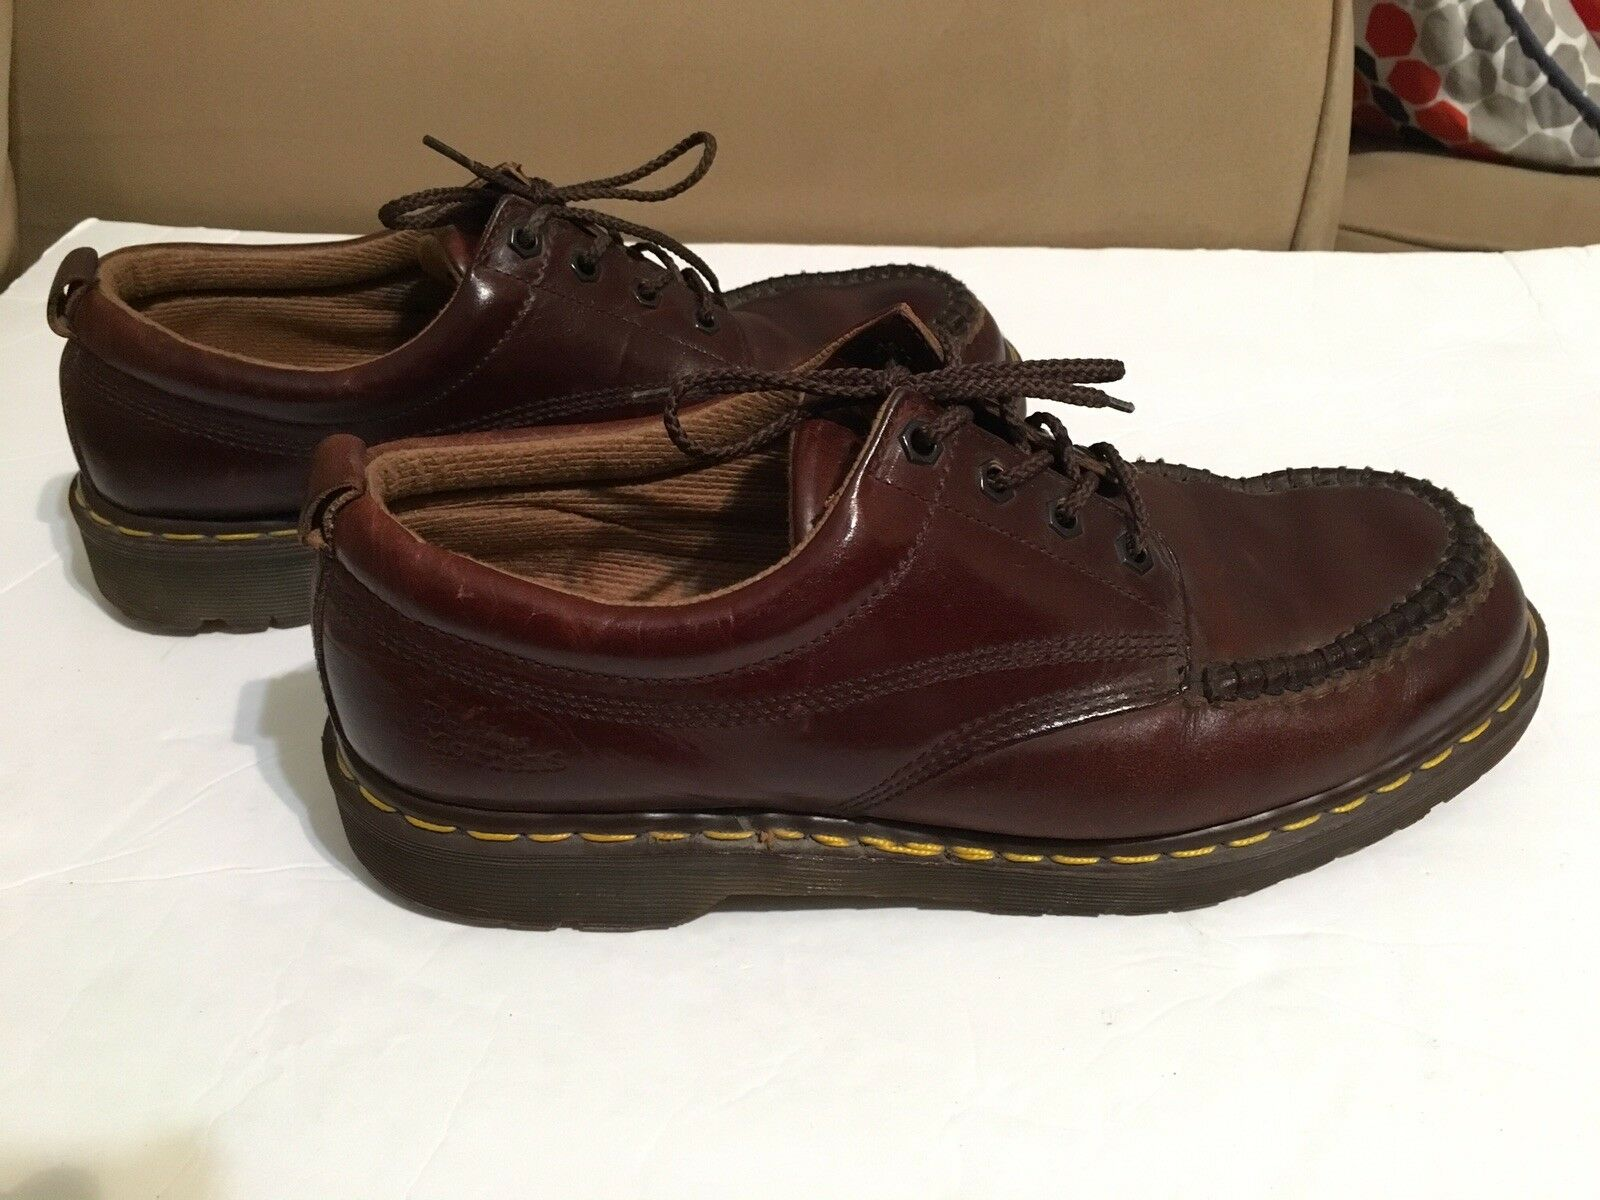 Men's Dr Martens 8054 Made In England Moc Toe Oxford Brown Leather shoes Sz 11